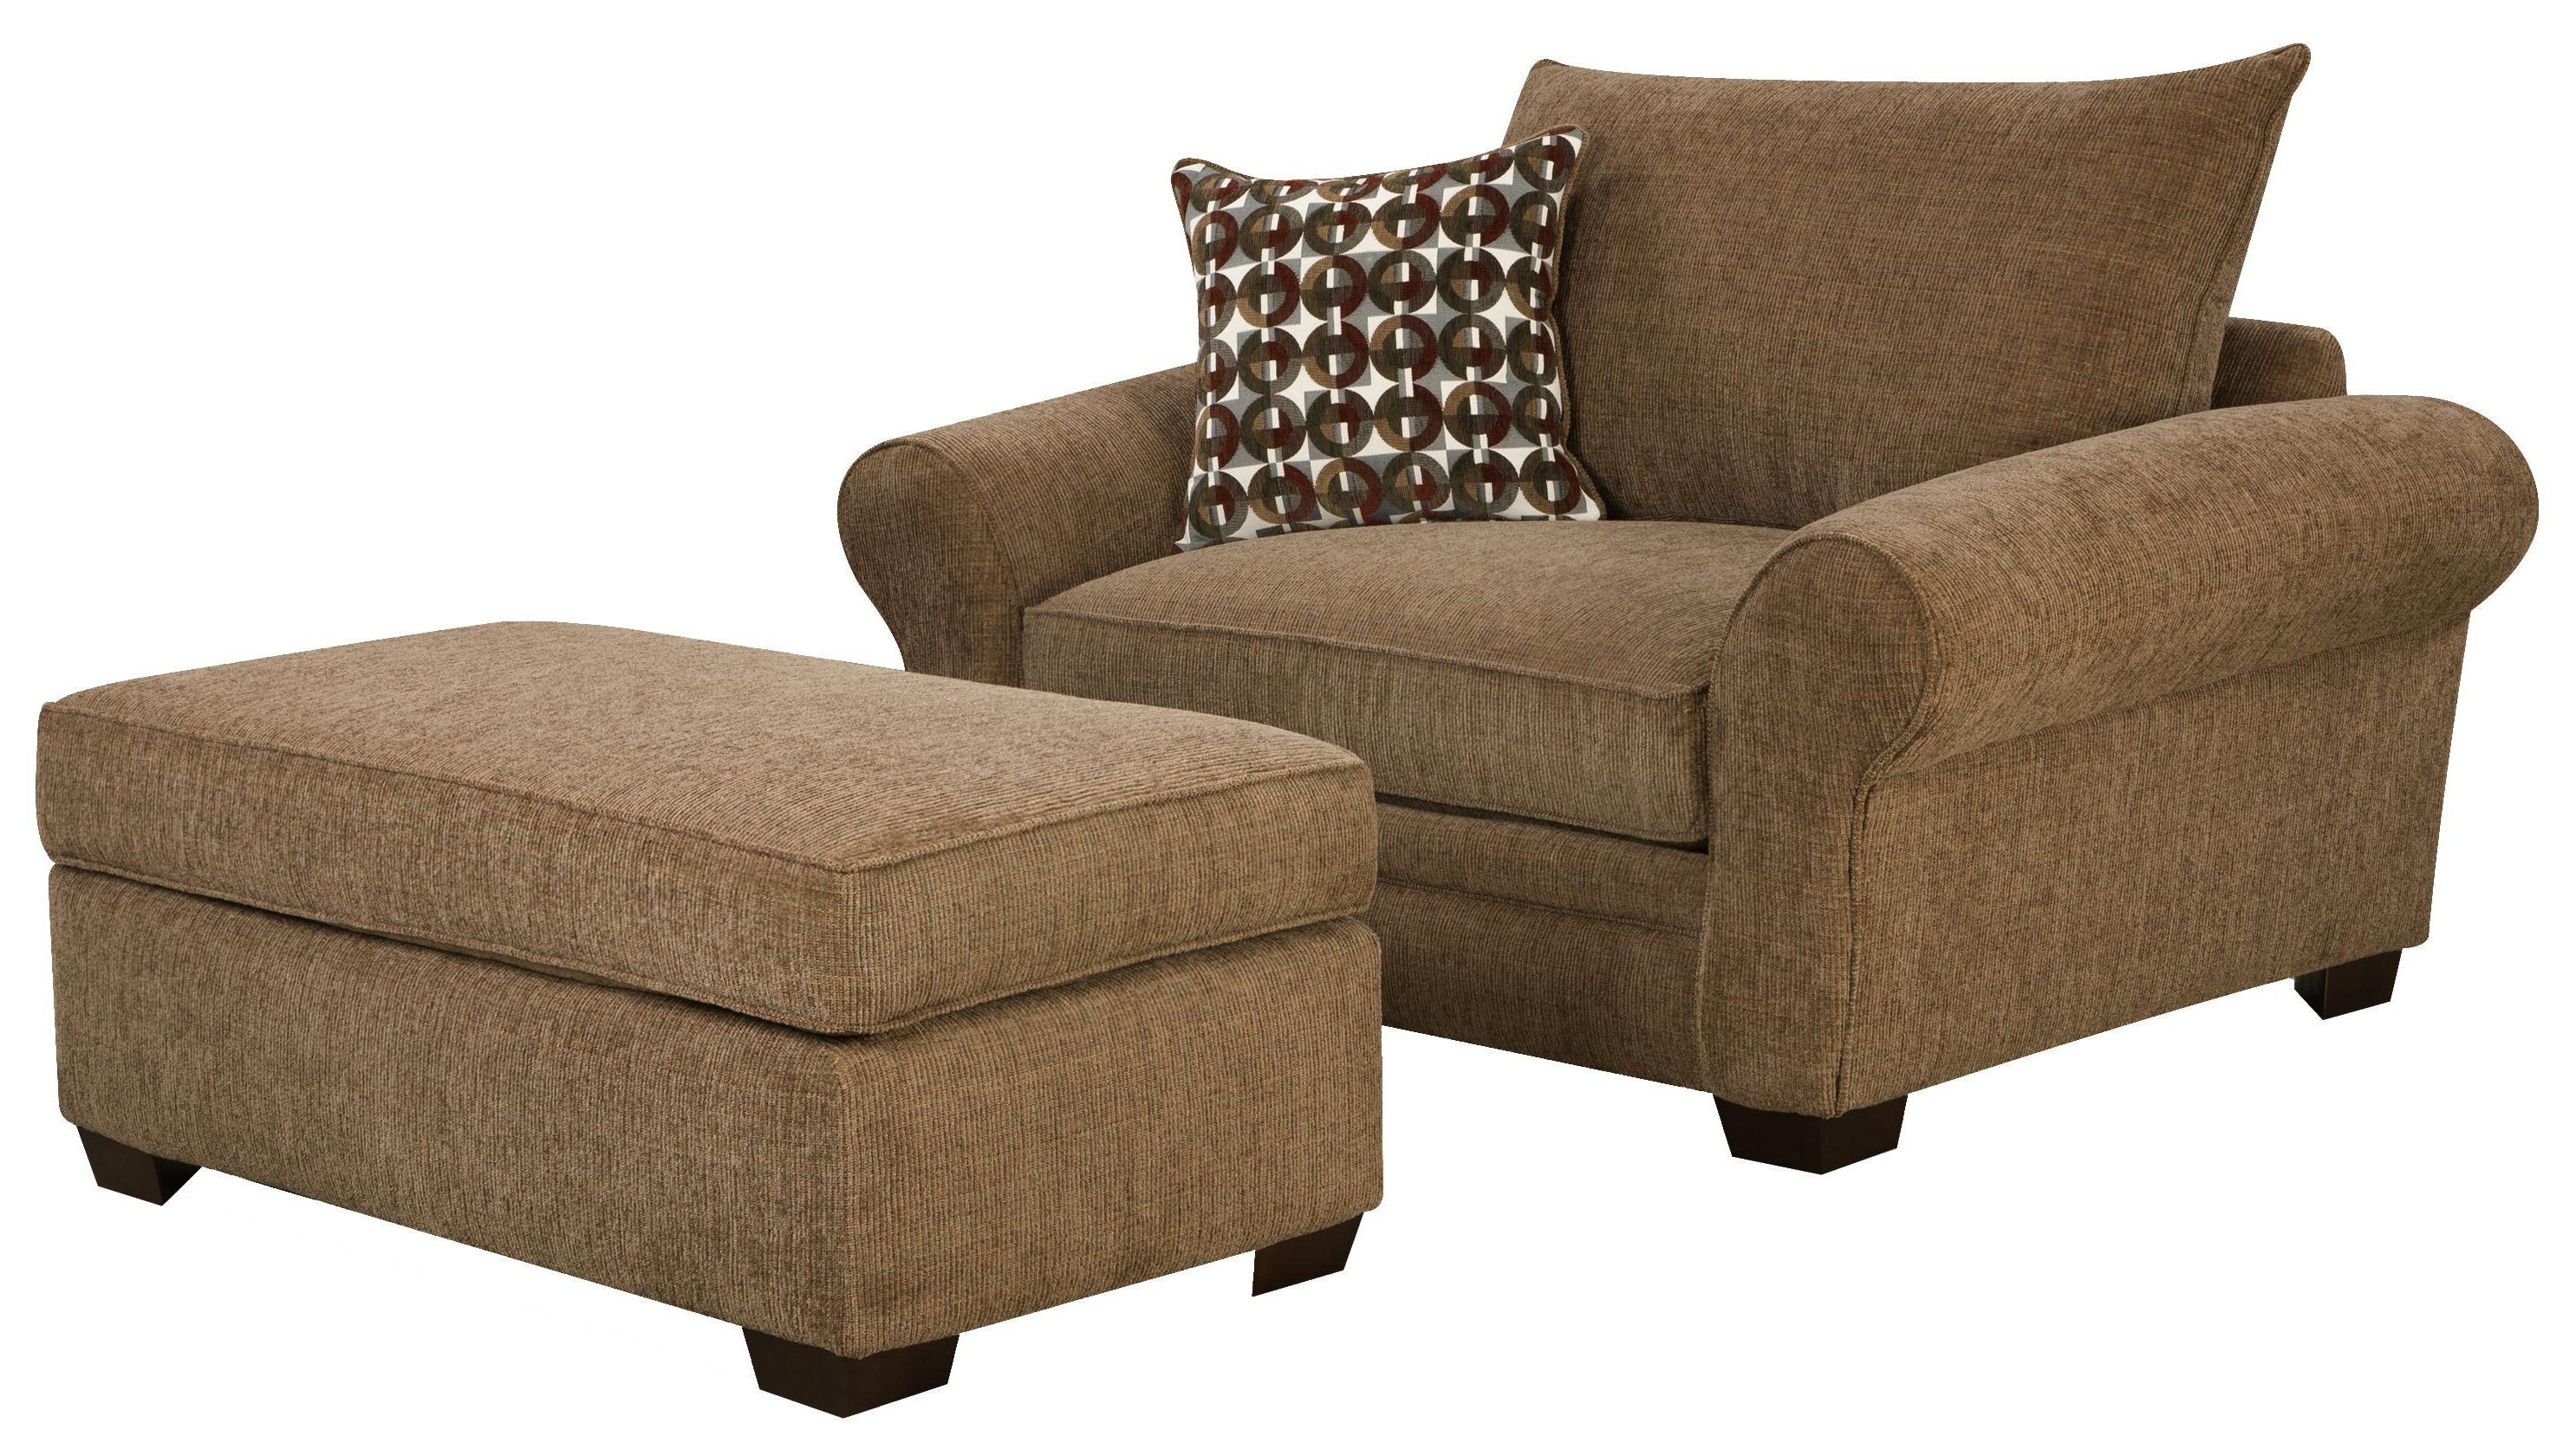 Extra Large Chair And A Half & Ottoman Set For Casual Styled Living With Popular Sofa Chair And Ottoman (Gallery 3 of 20)